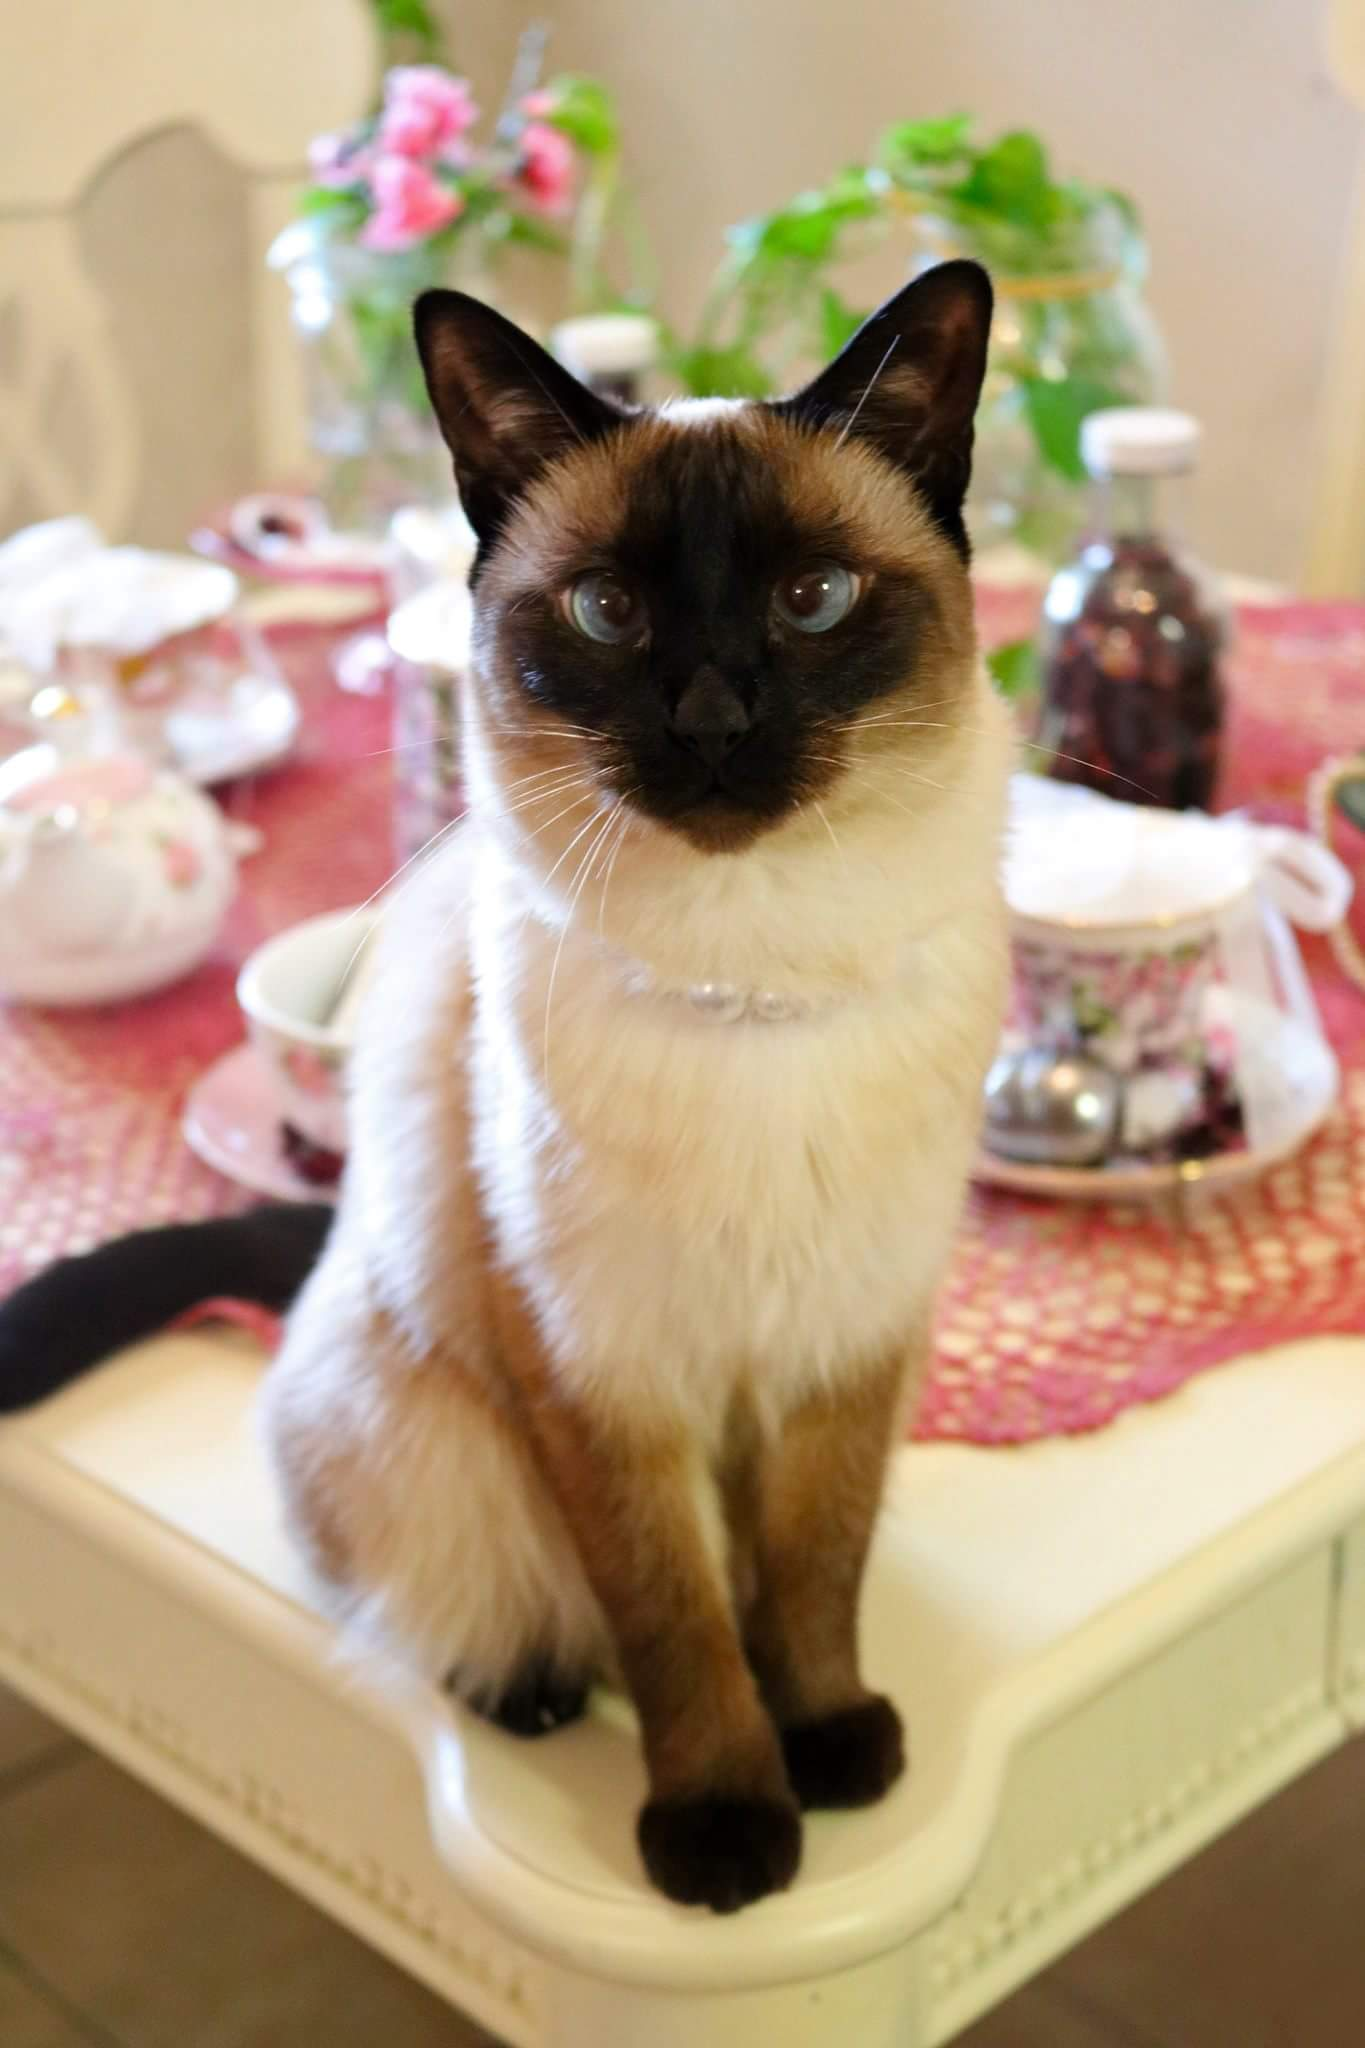 Siamese on tea table wearing pearls